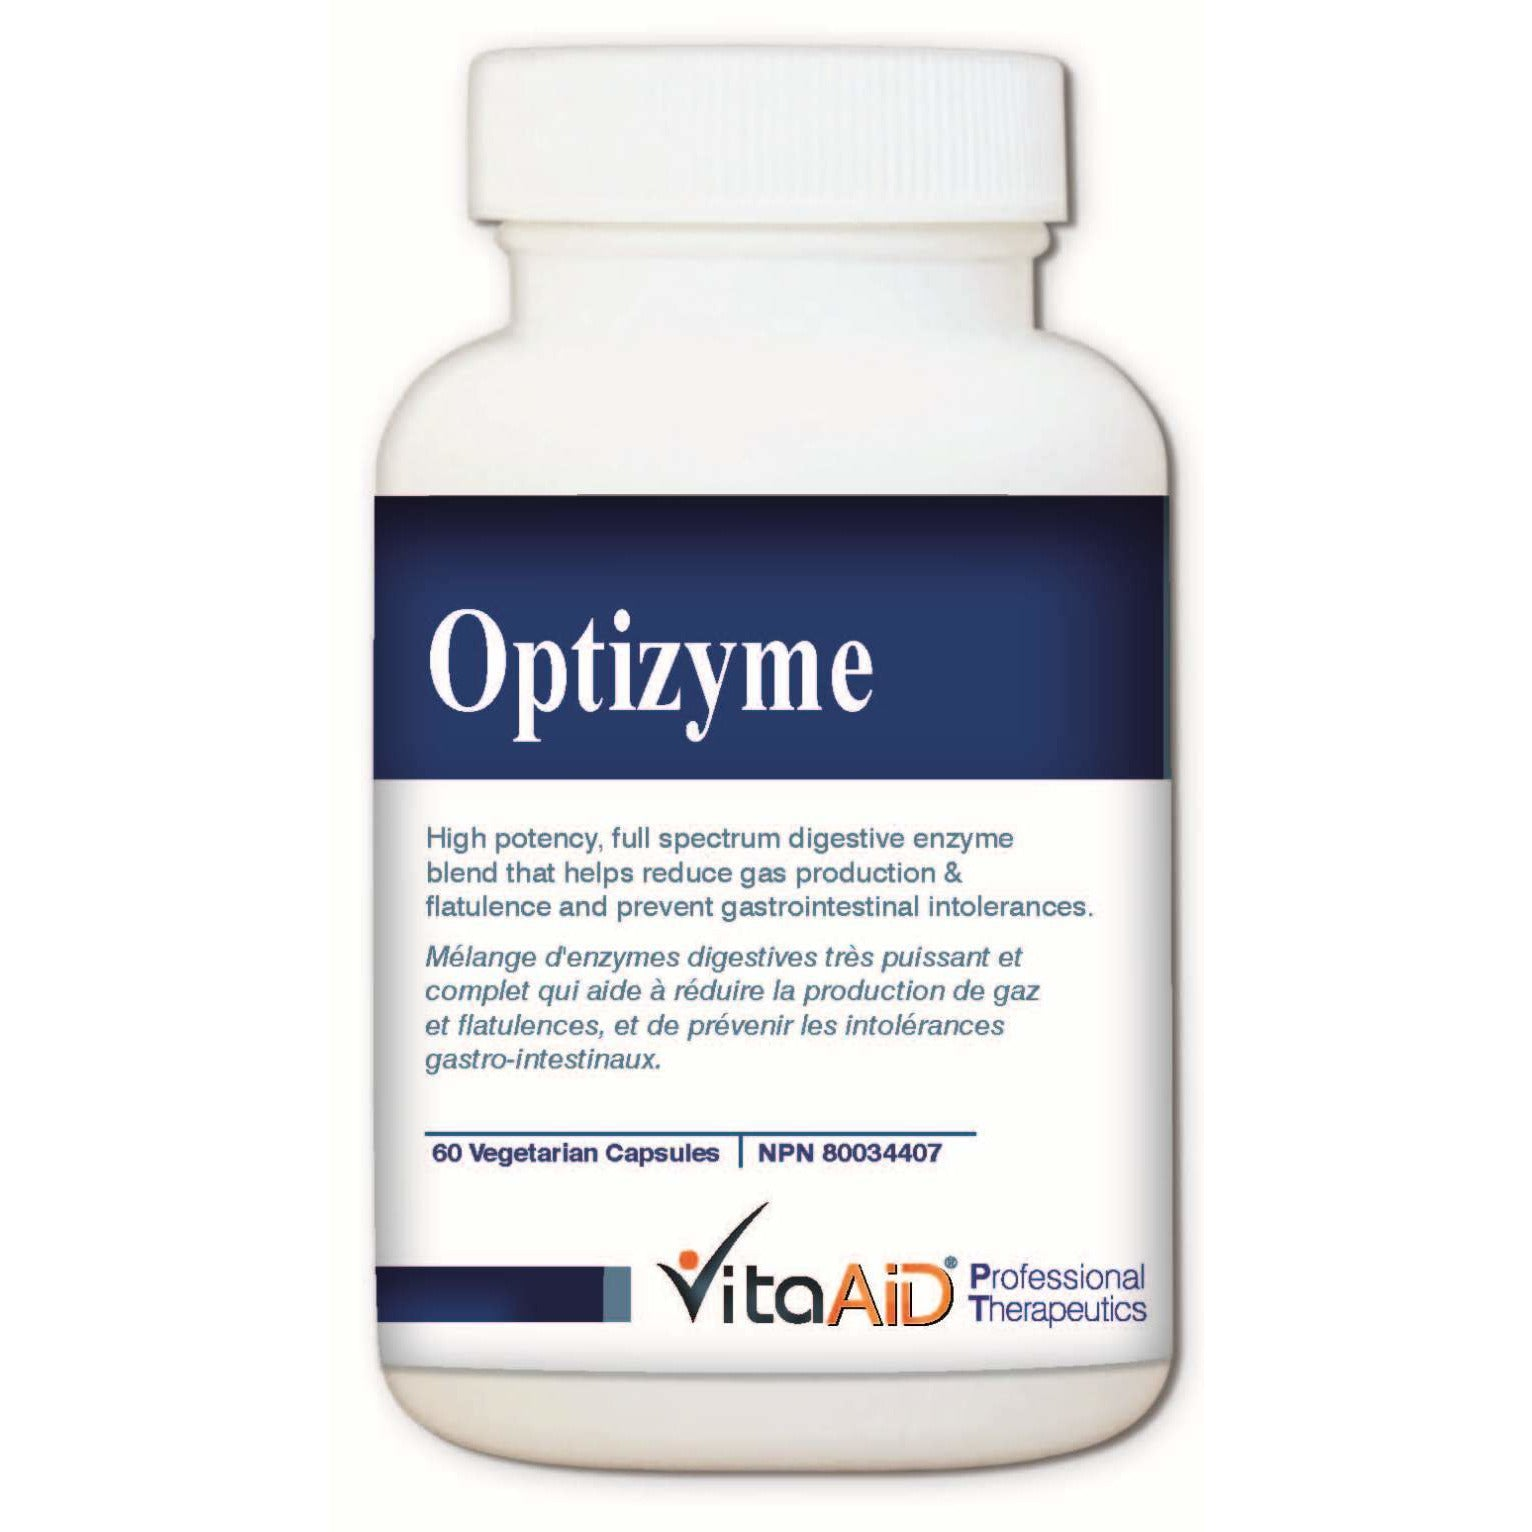 Optizyme (S)  High Dose, Full Spectrum of Digestive Enzymes 60 veg caps